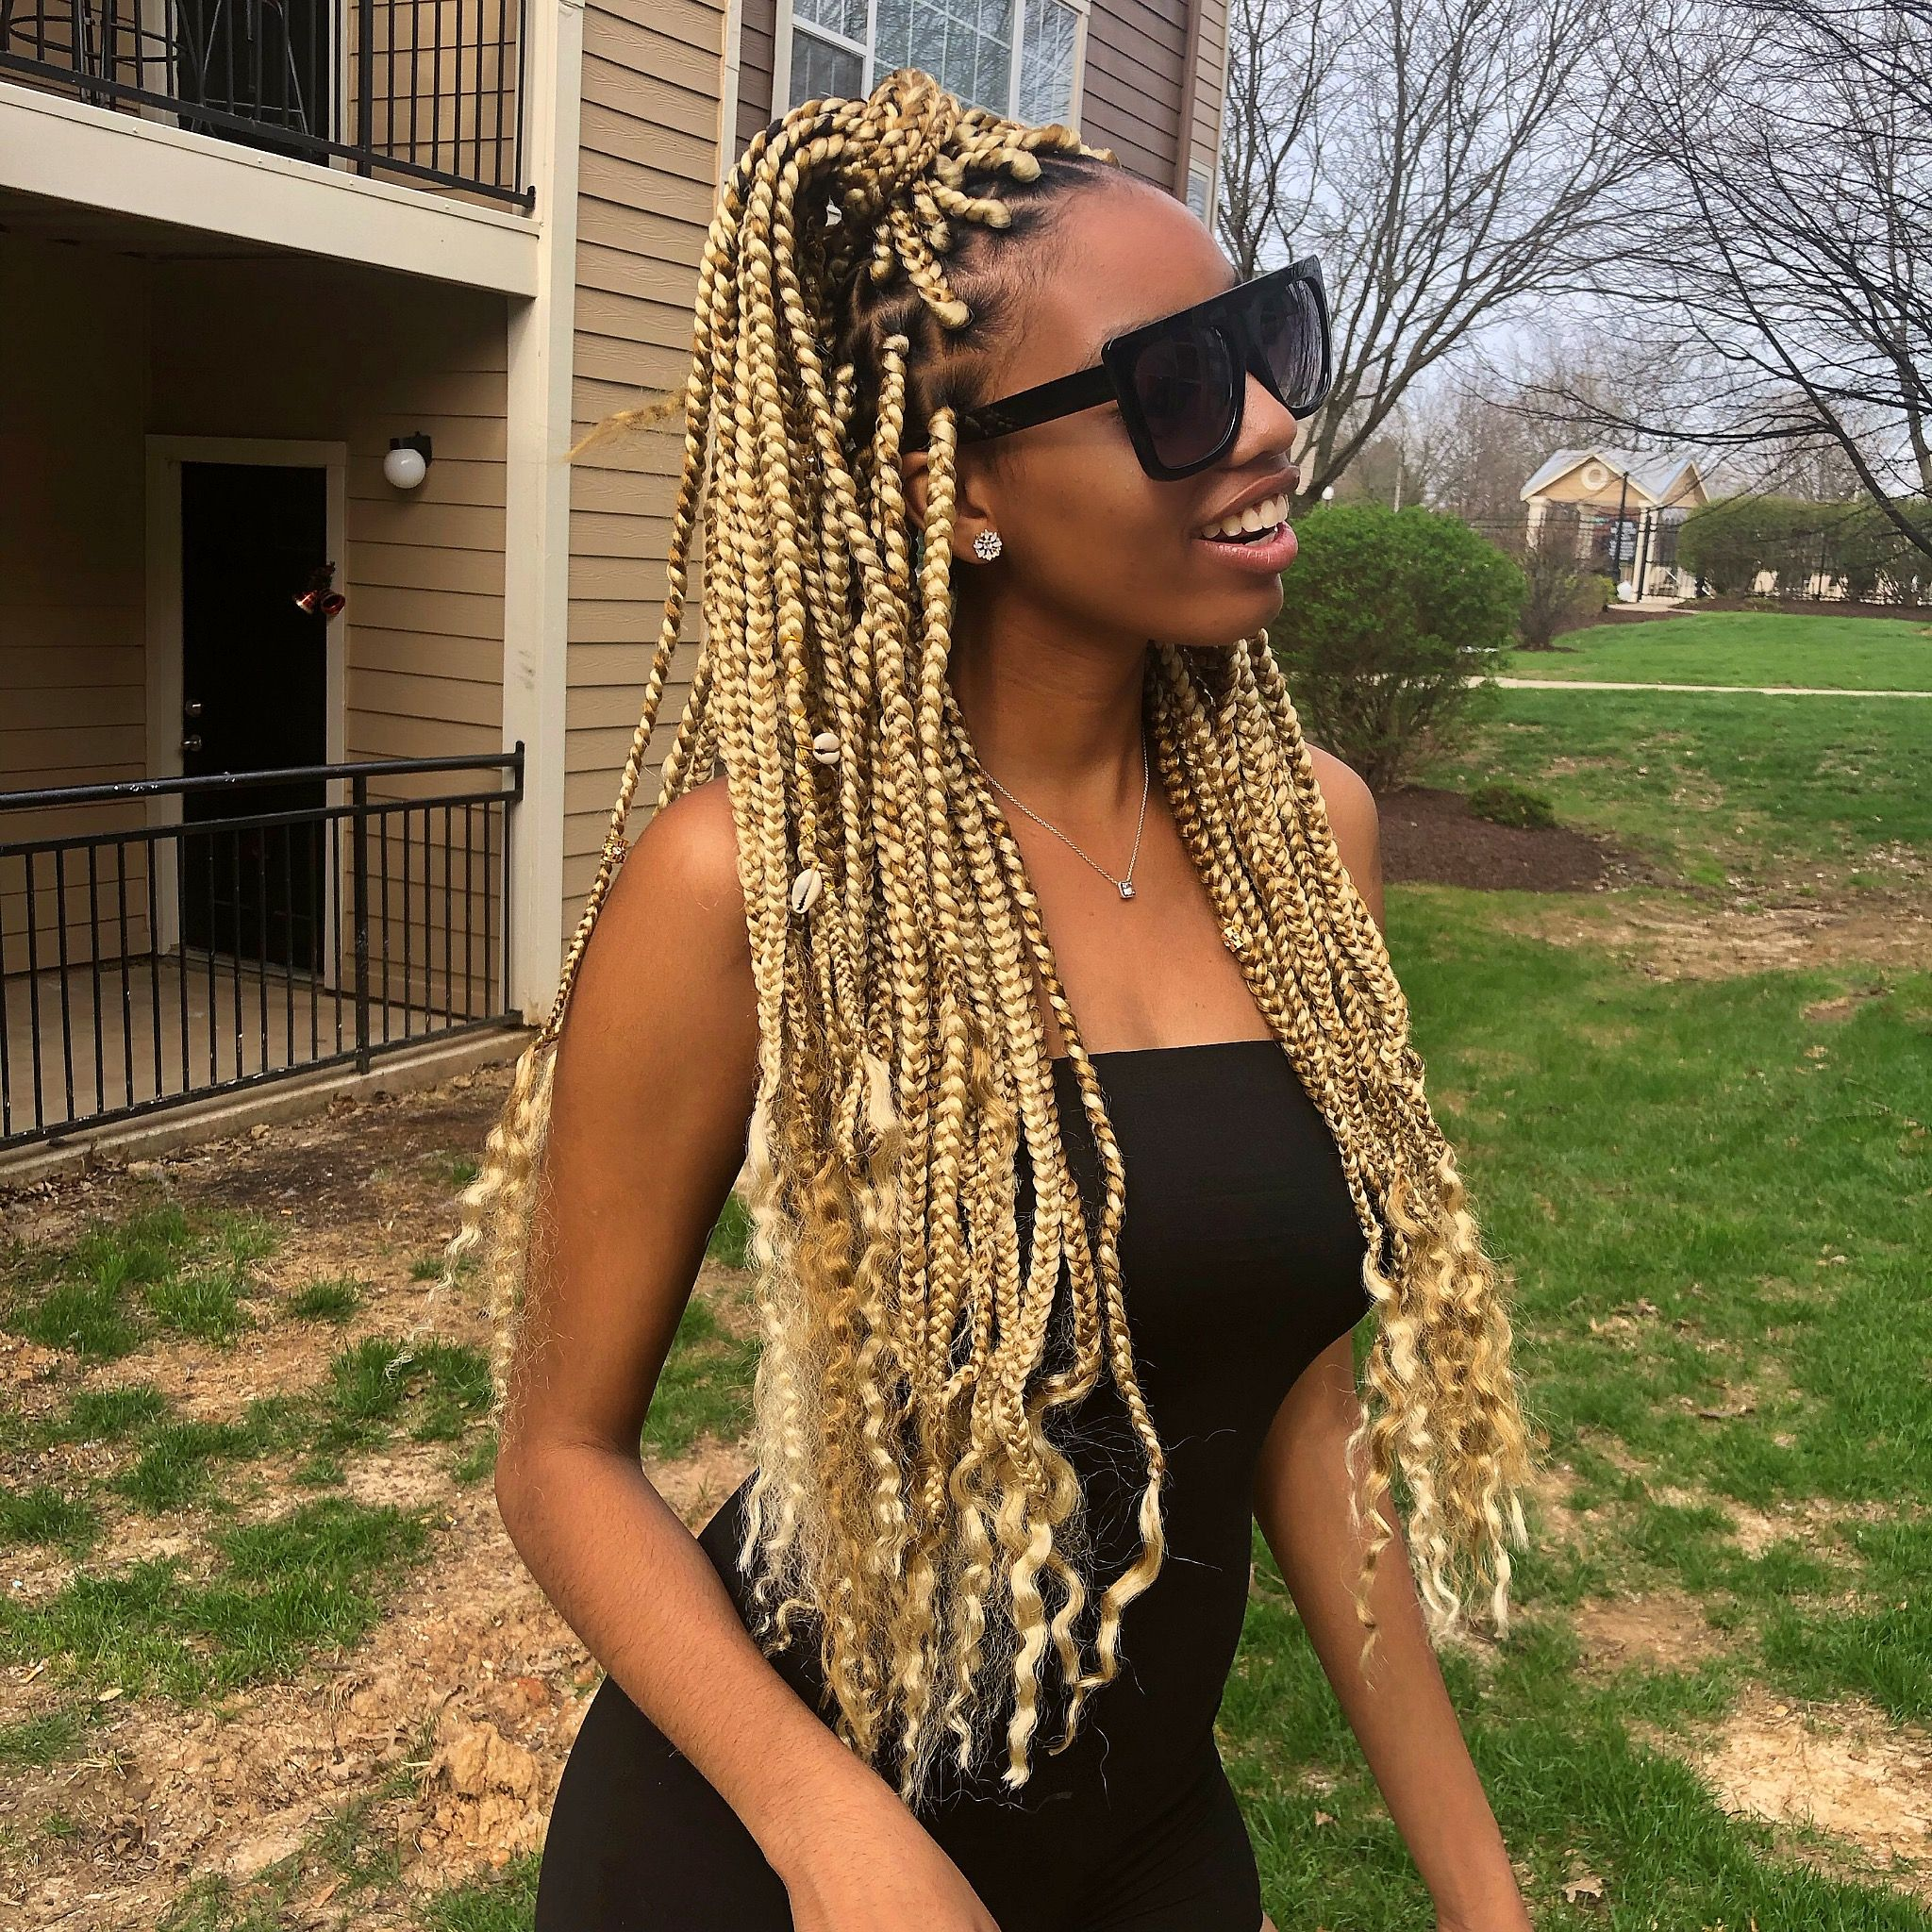 613 27 Color Mix With Curly Ends For A Boho Look Black Hair With